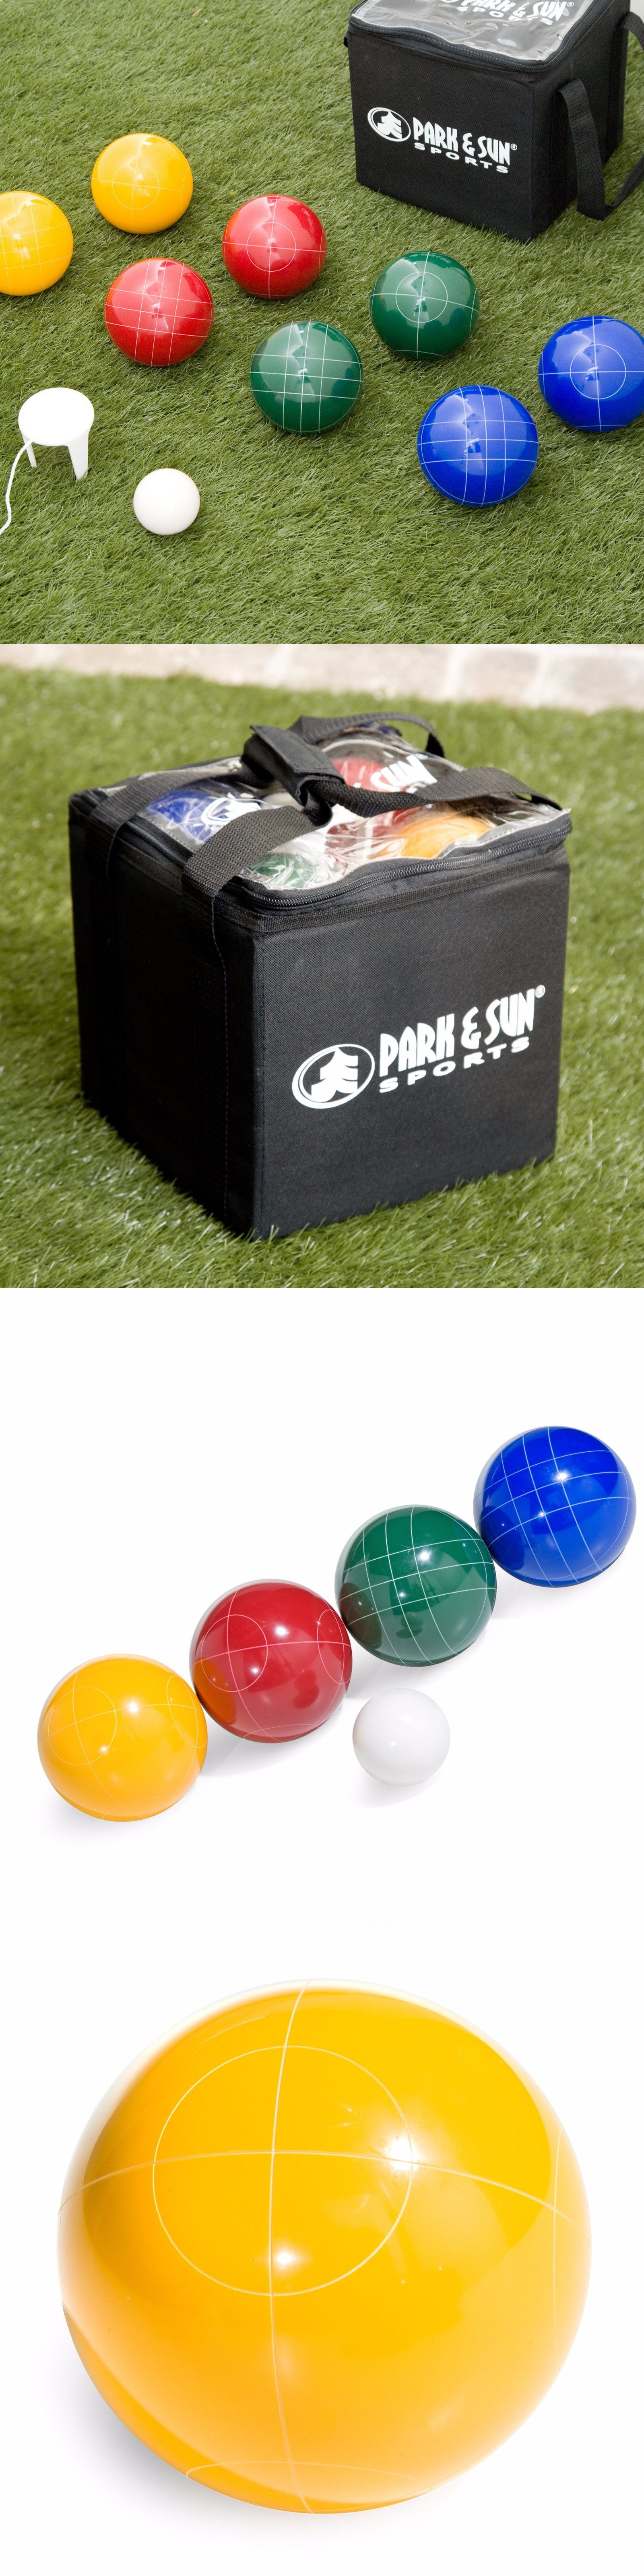 bocce ball 79788 bocce ball set lawn games for kids adults